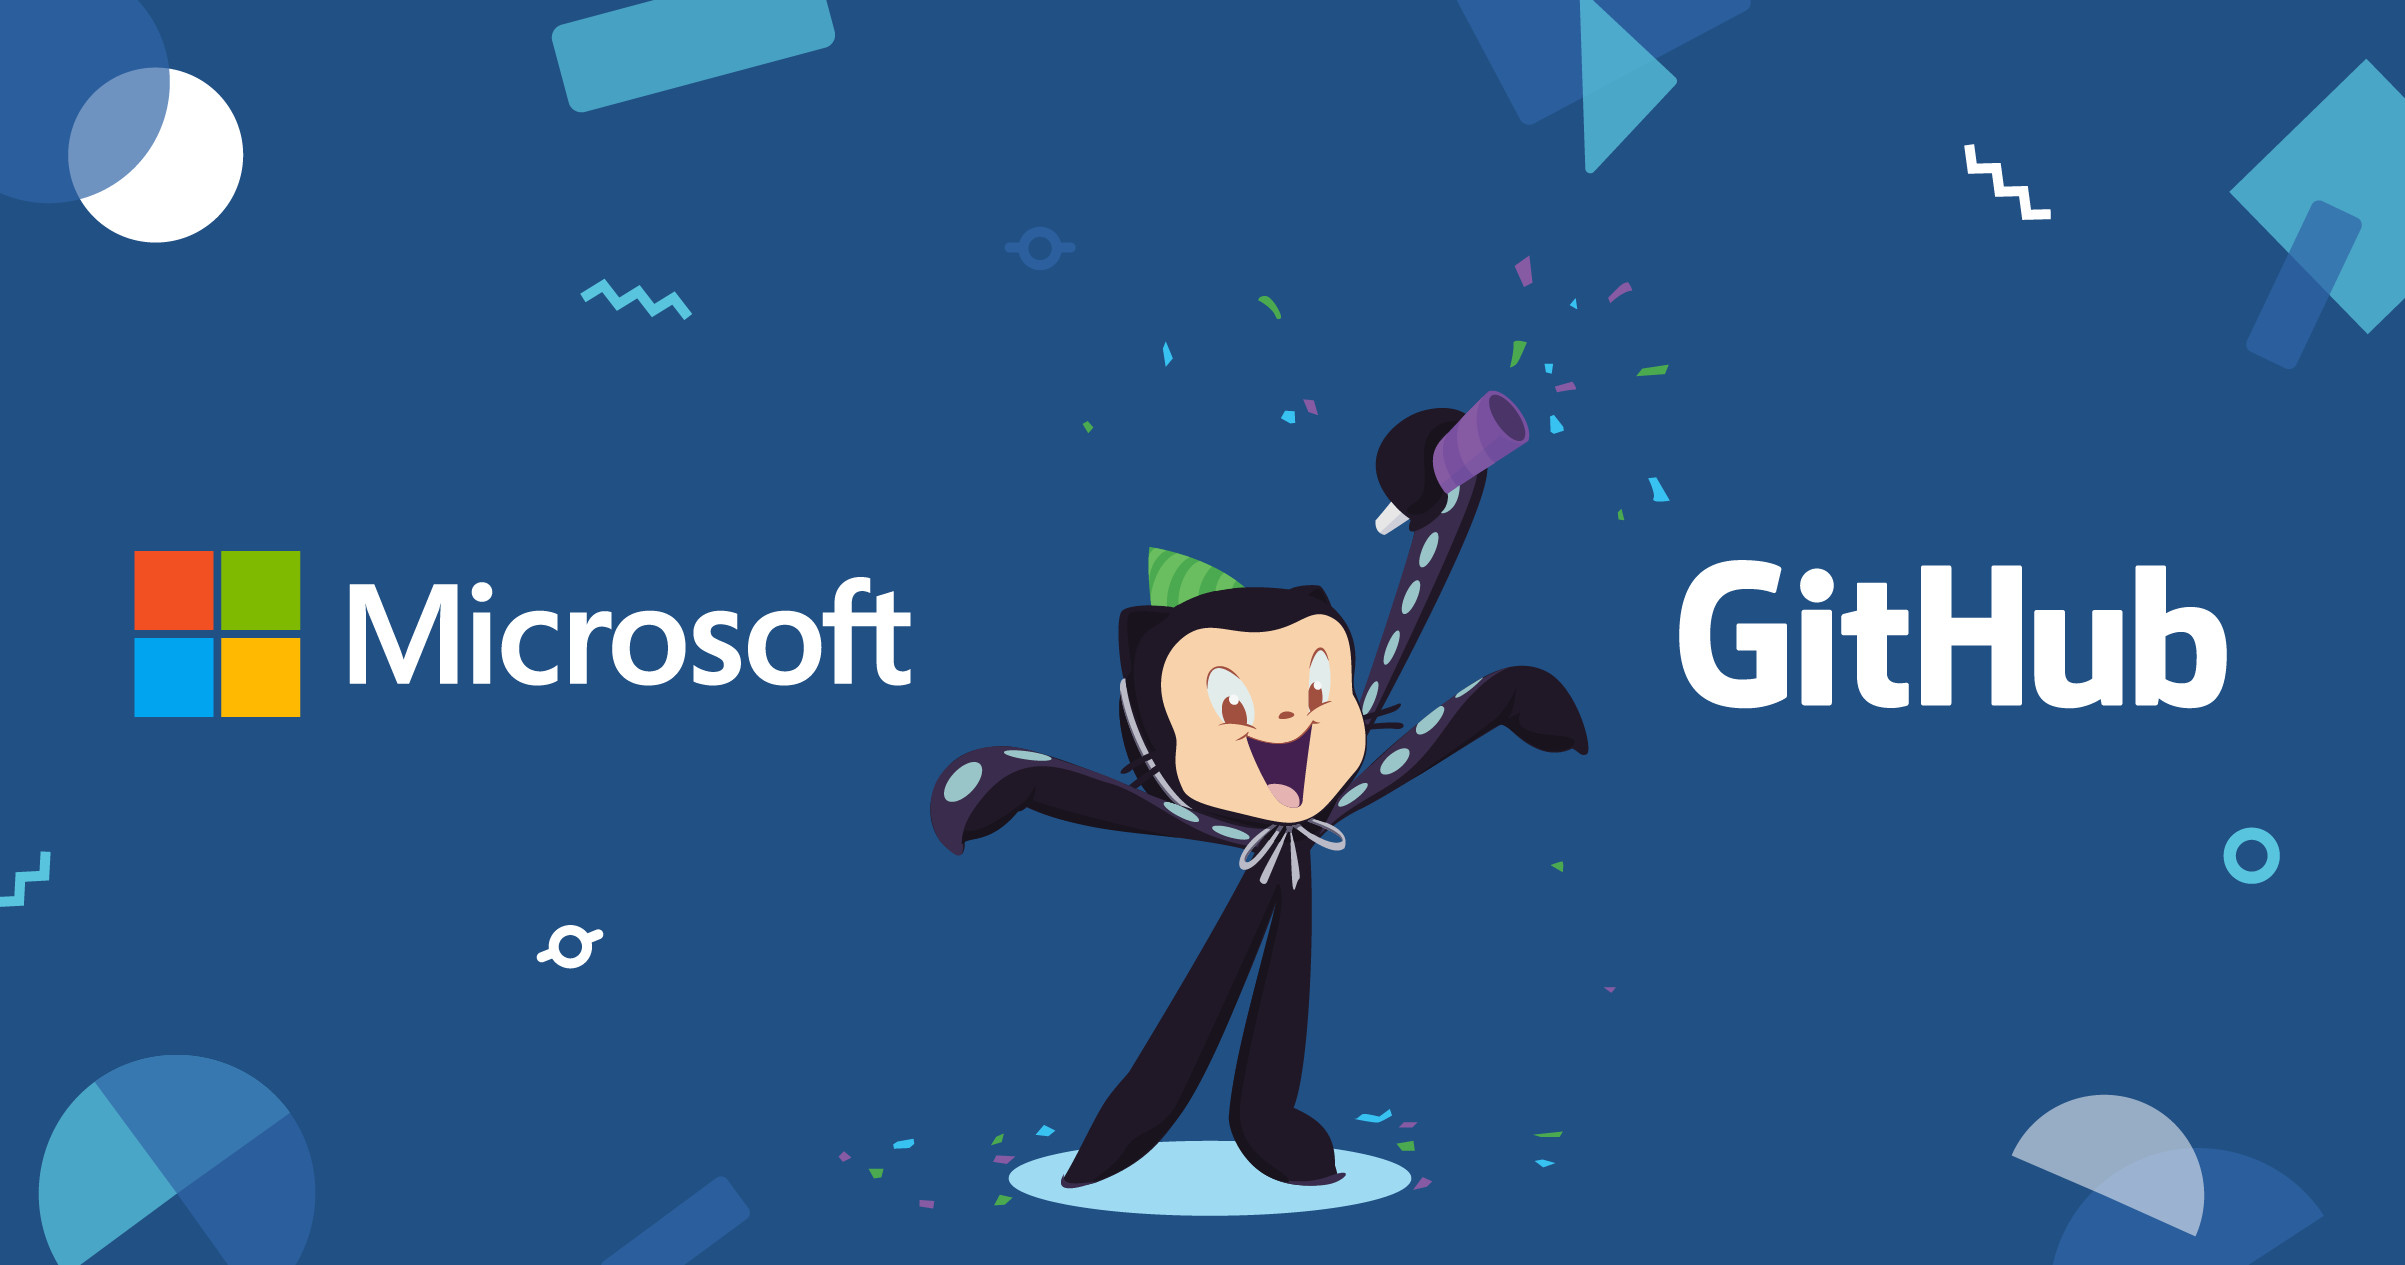 Gitlab goes after Github users amid Microsoft acquisition rumours